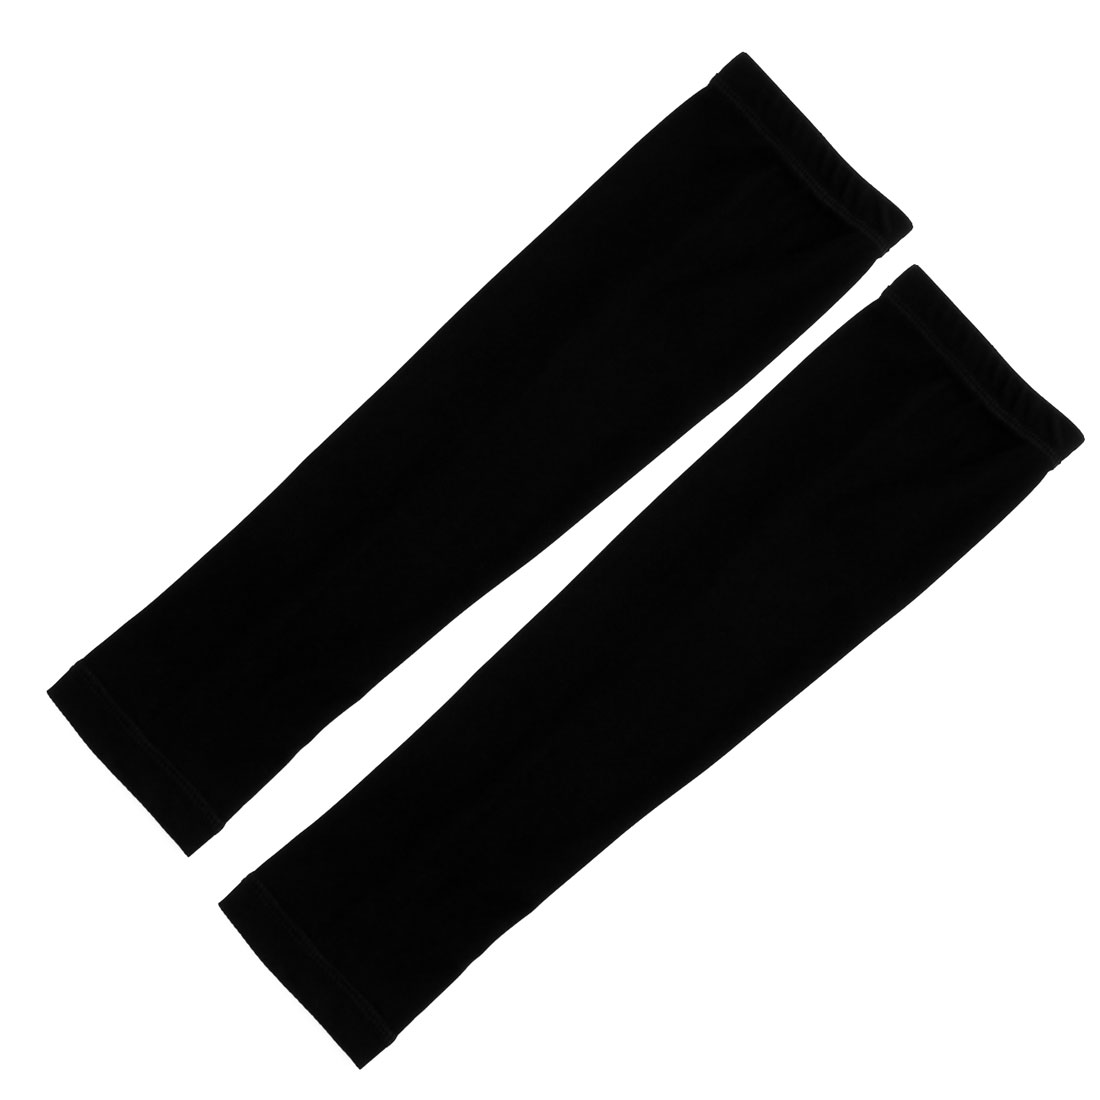 Outdoor Sports Bicycle Cycling Sun Protection Cover Arm Sleeves Black Pair by Unique-Bargains